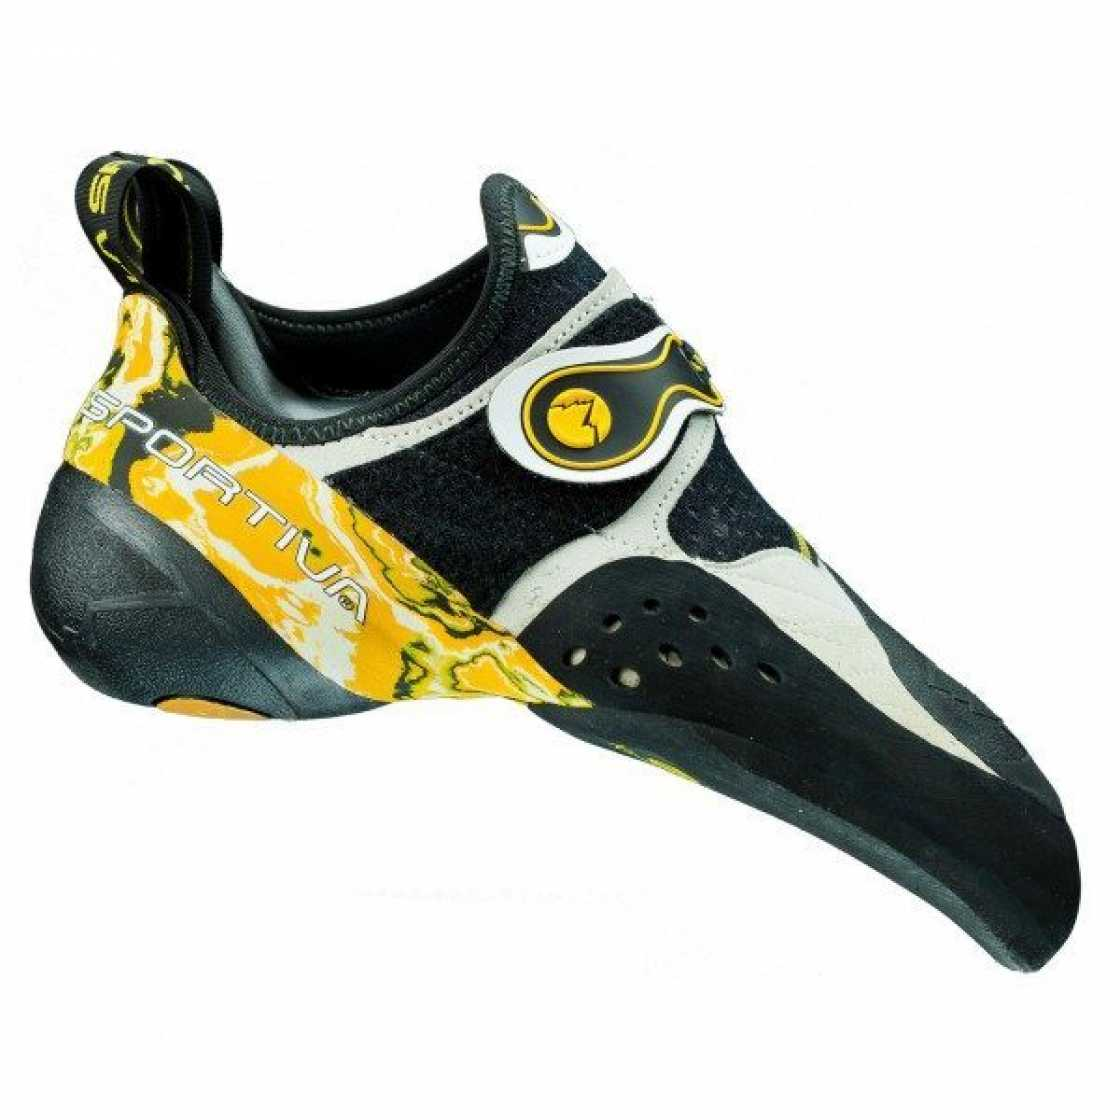 Klimschoen La Sportiva Solution